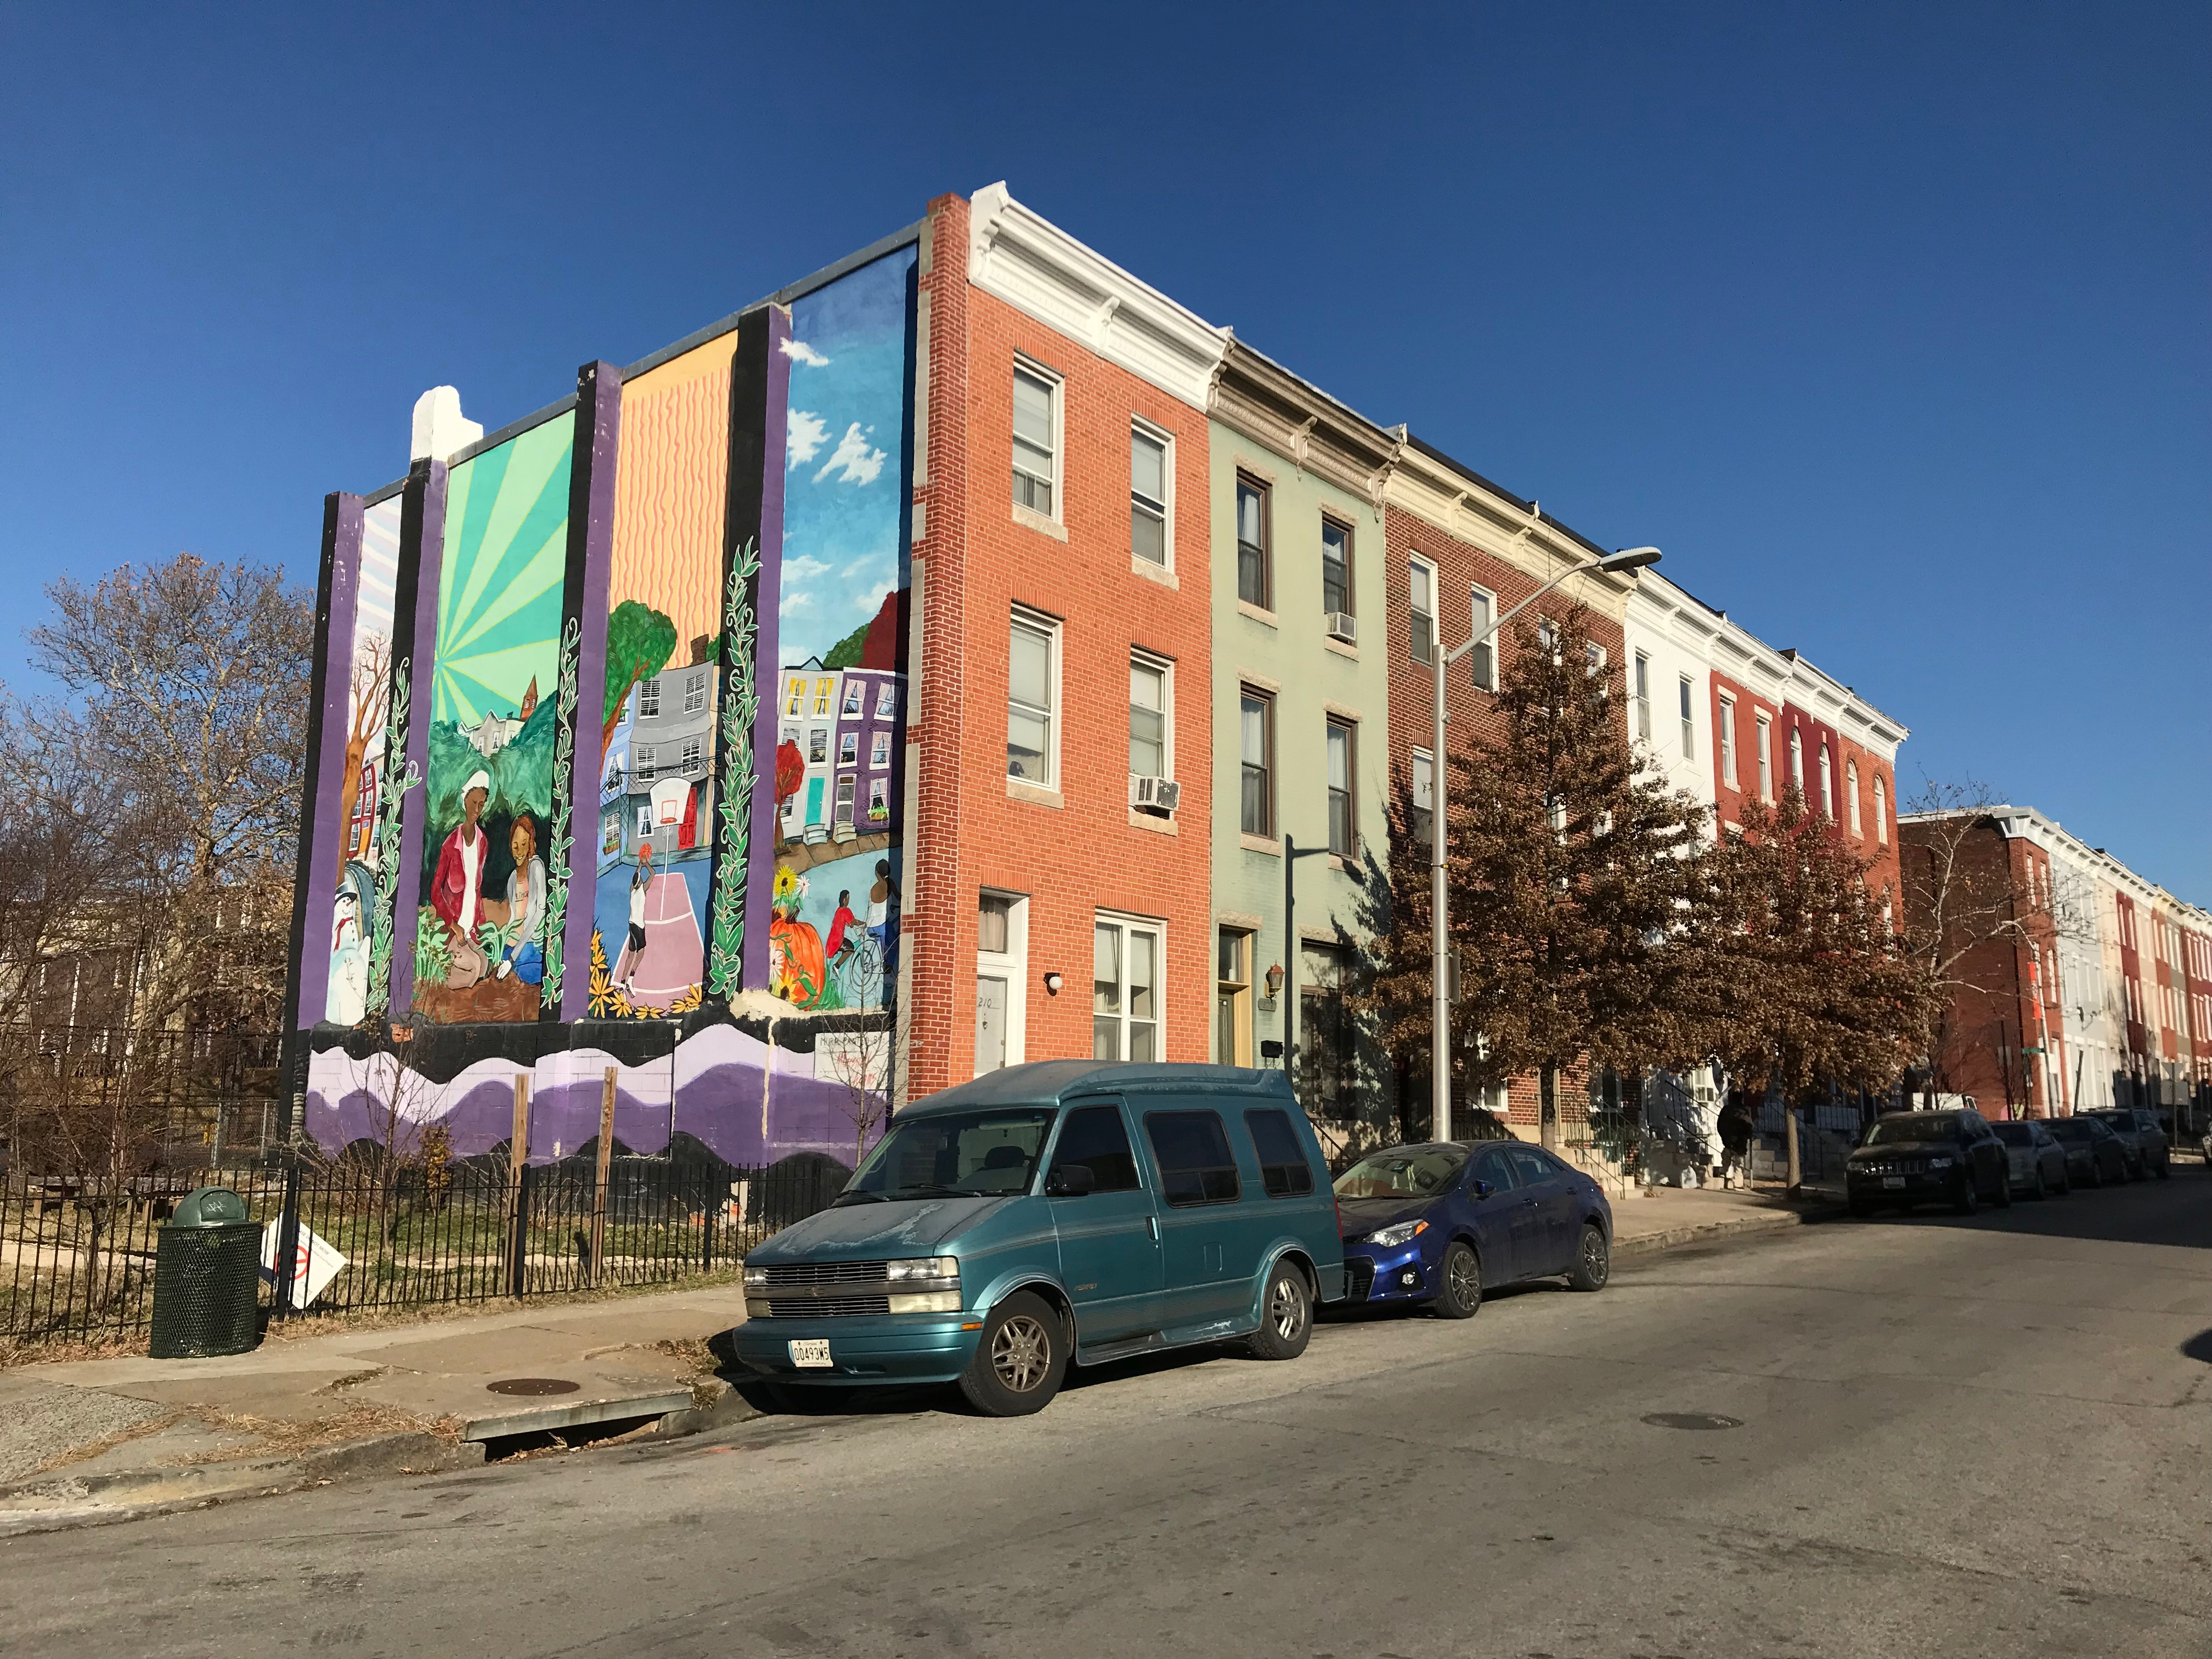 Rowhouses and mural, 200 block of e. 22nd street, baltimore, md 21218 photo